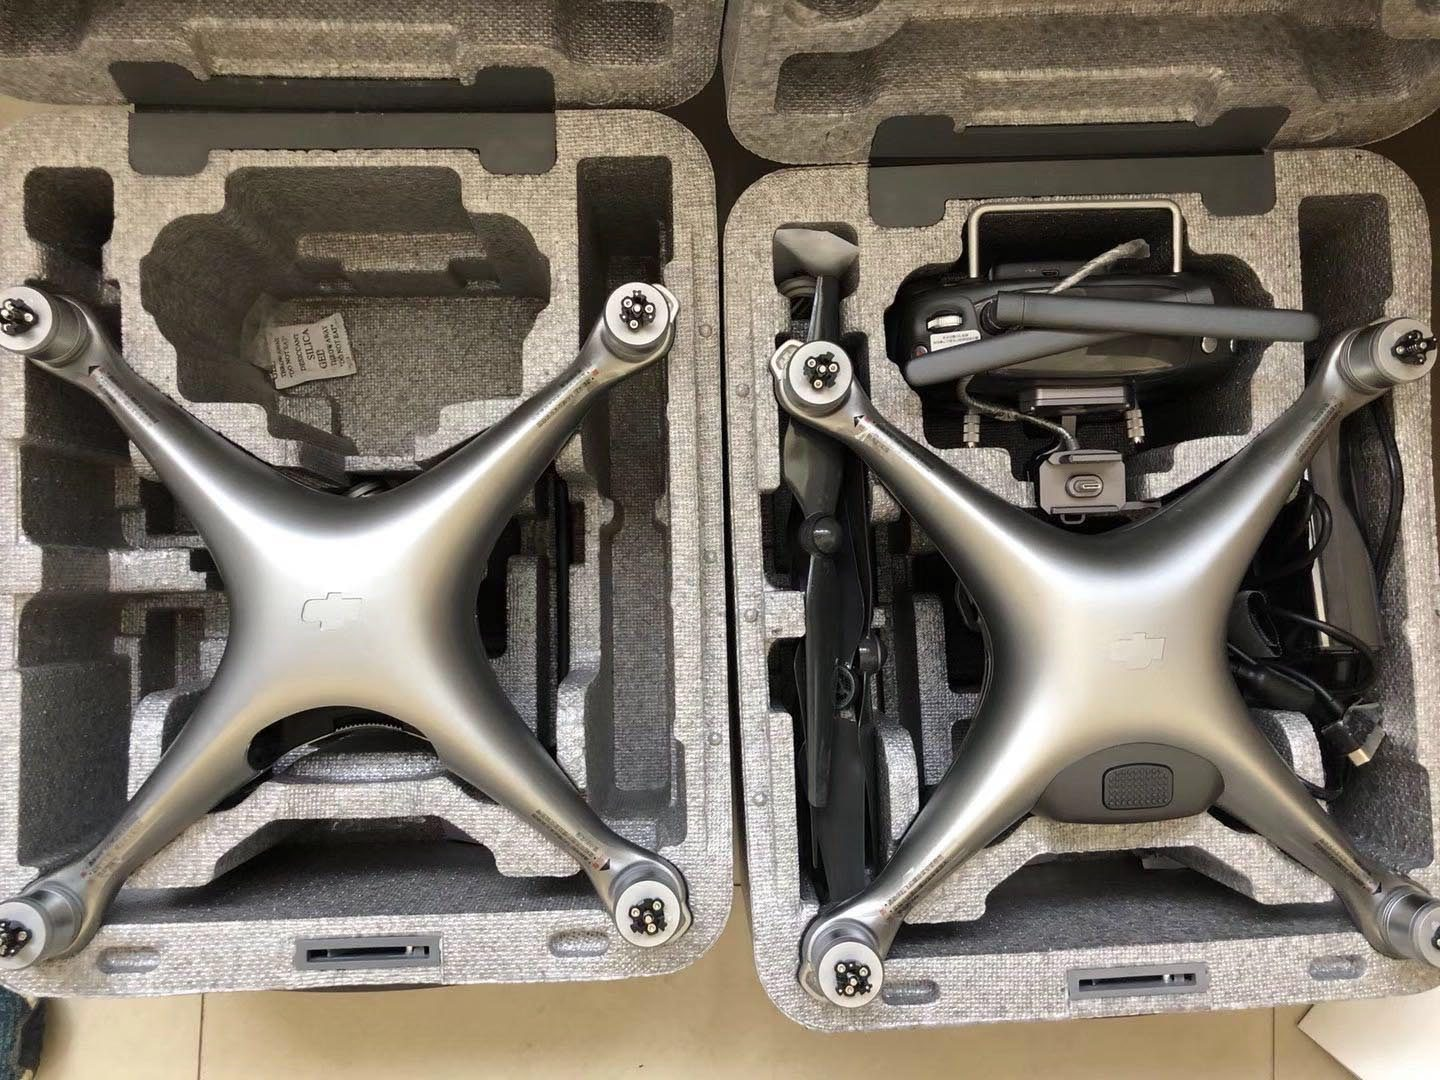 Newly leaked photos of the supposed DJI Phantom 5 show very little exterior upgrades